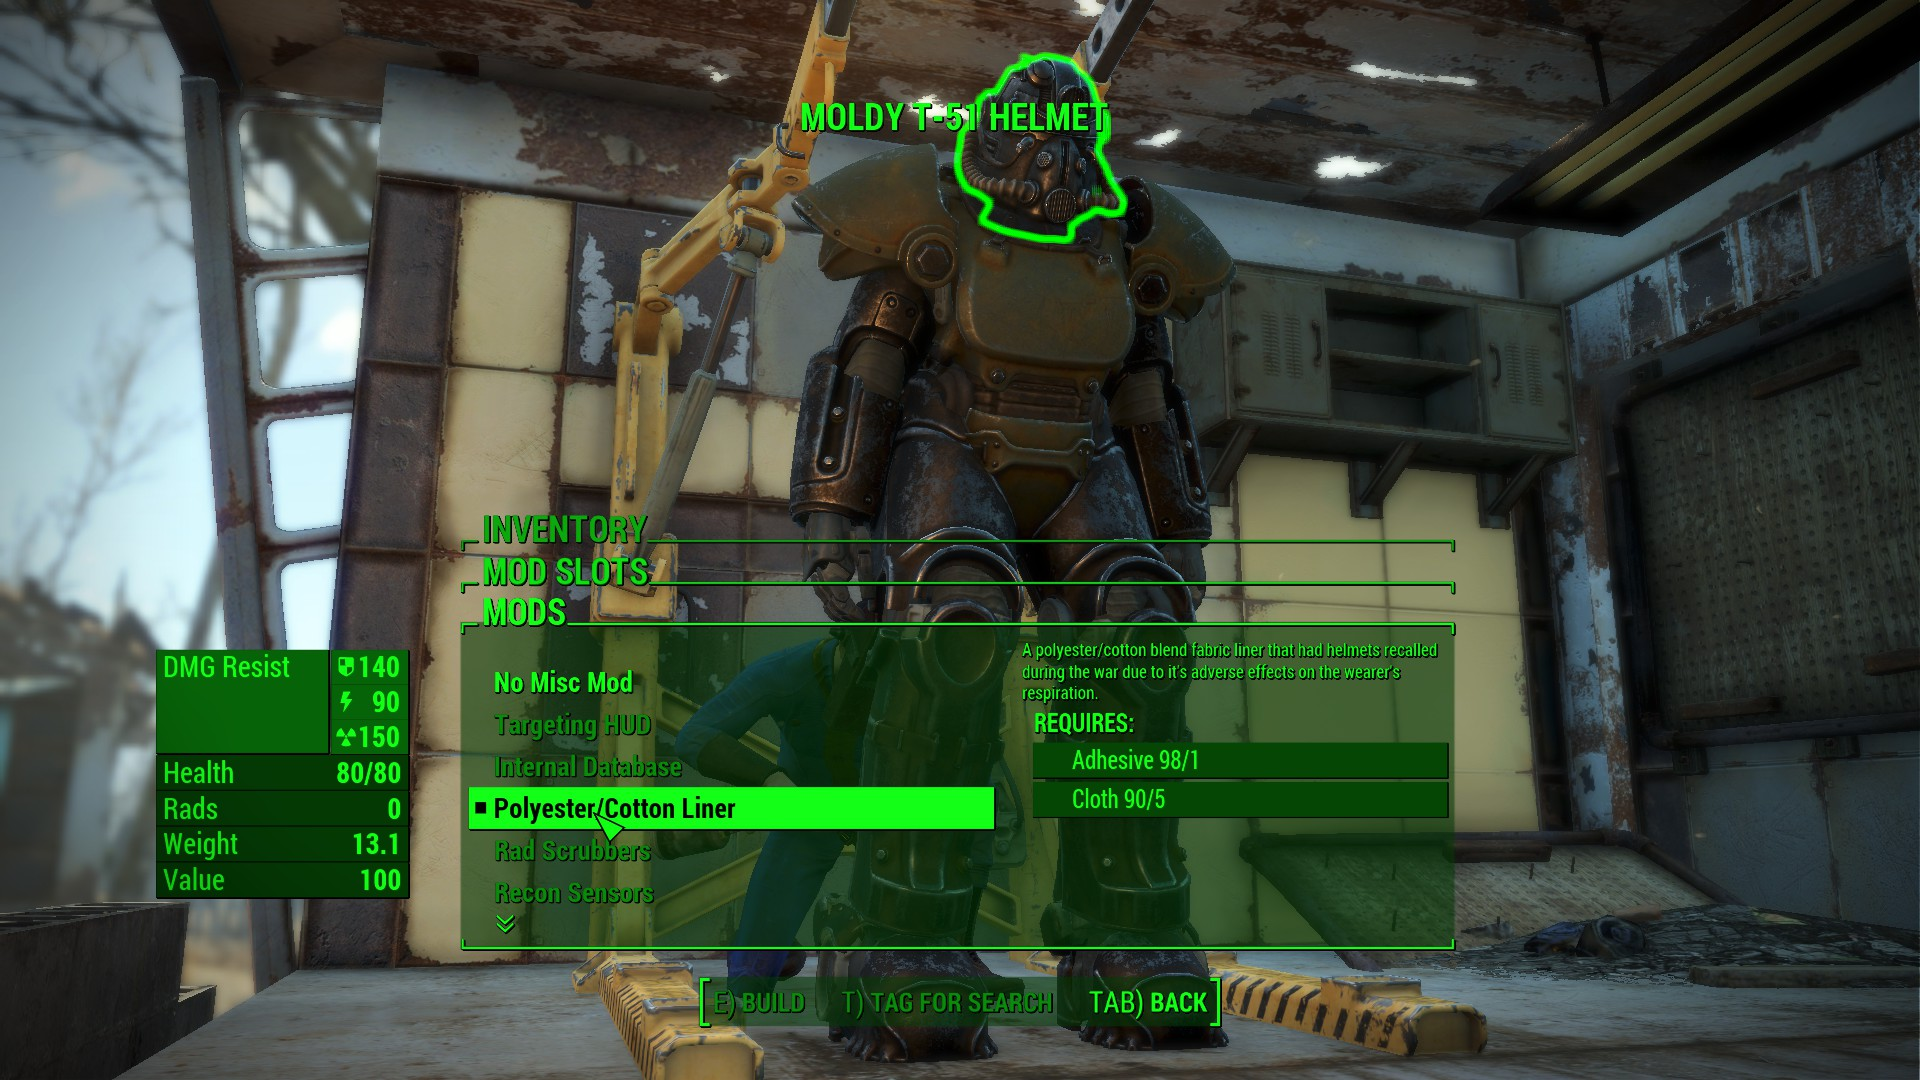 The Fallout 76 helmet recalled for mold risk has been modded into Fallout 4 | PC Gamer